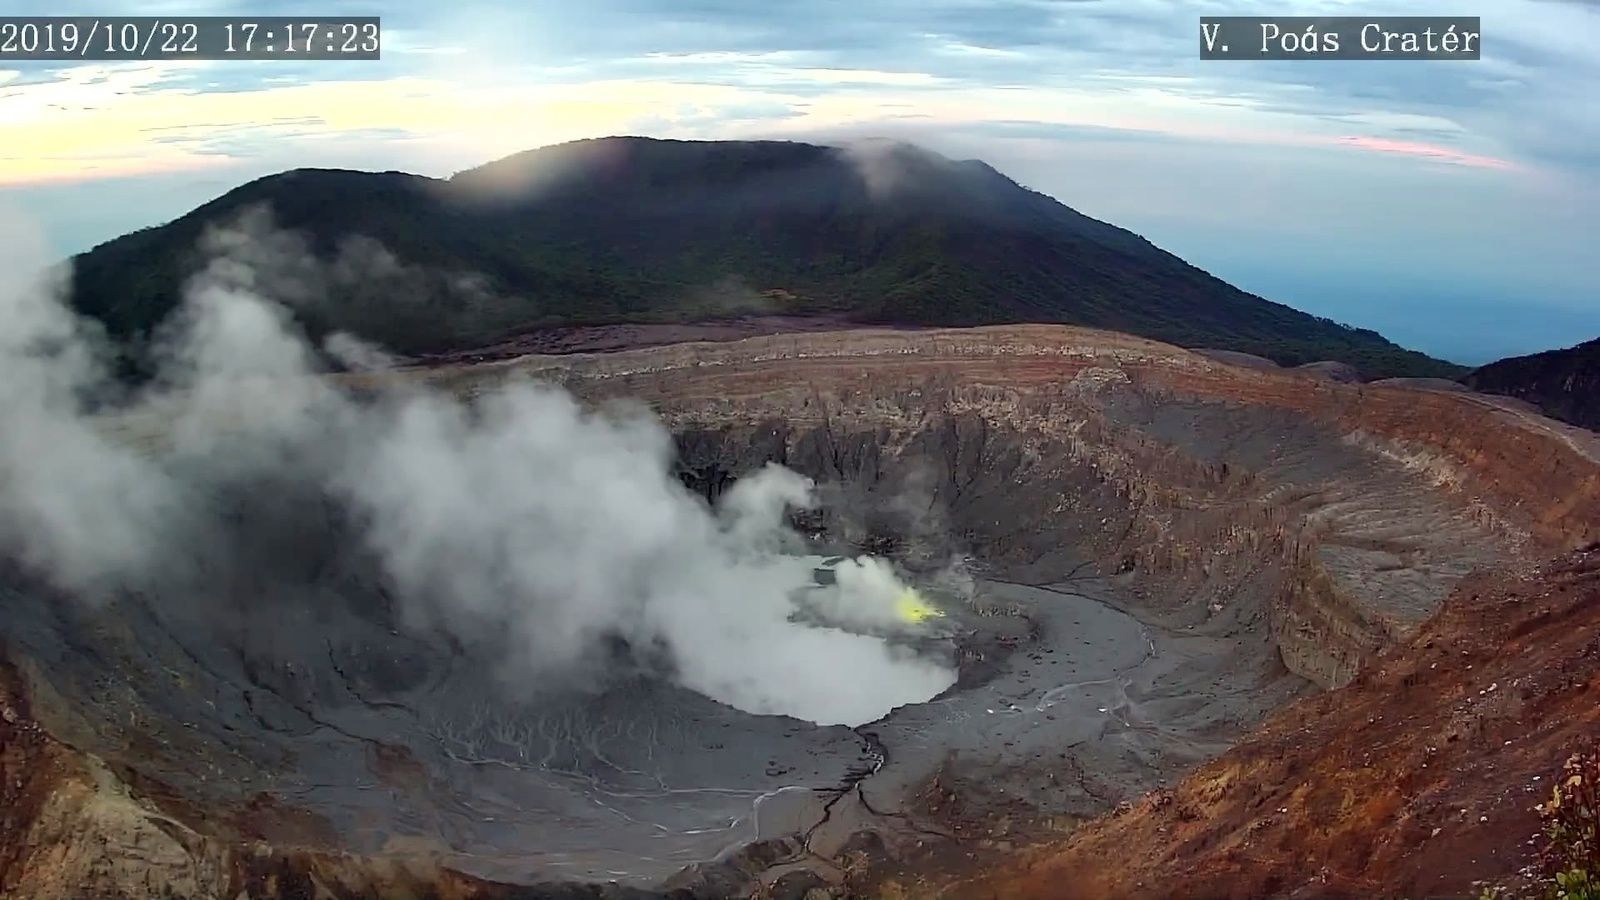 Poas - crater lake and active fumaroles; to pick up the sulfur hue of the little fumarole - RSN webcam 22.10.2019 / 17h17